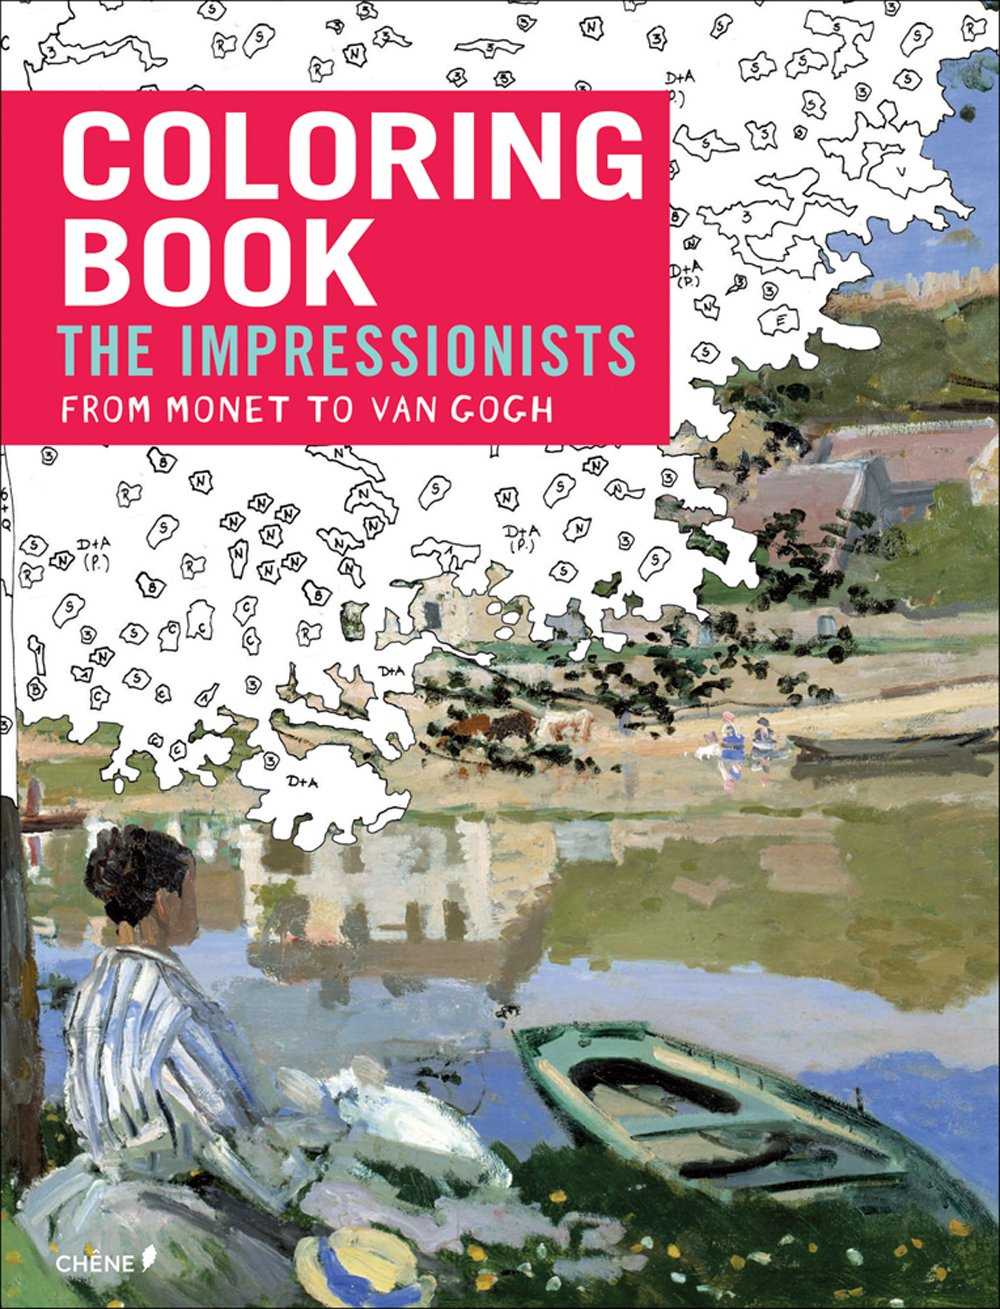 Impressionists Monet Gogh Coloring Books product image